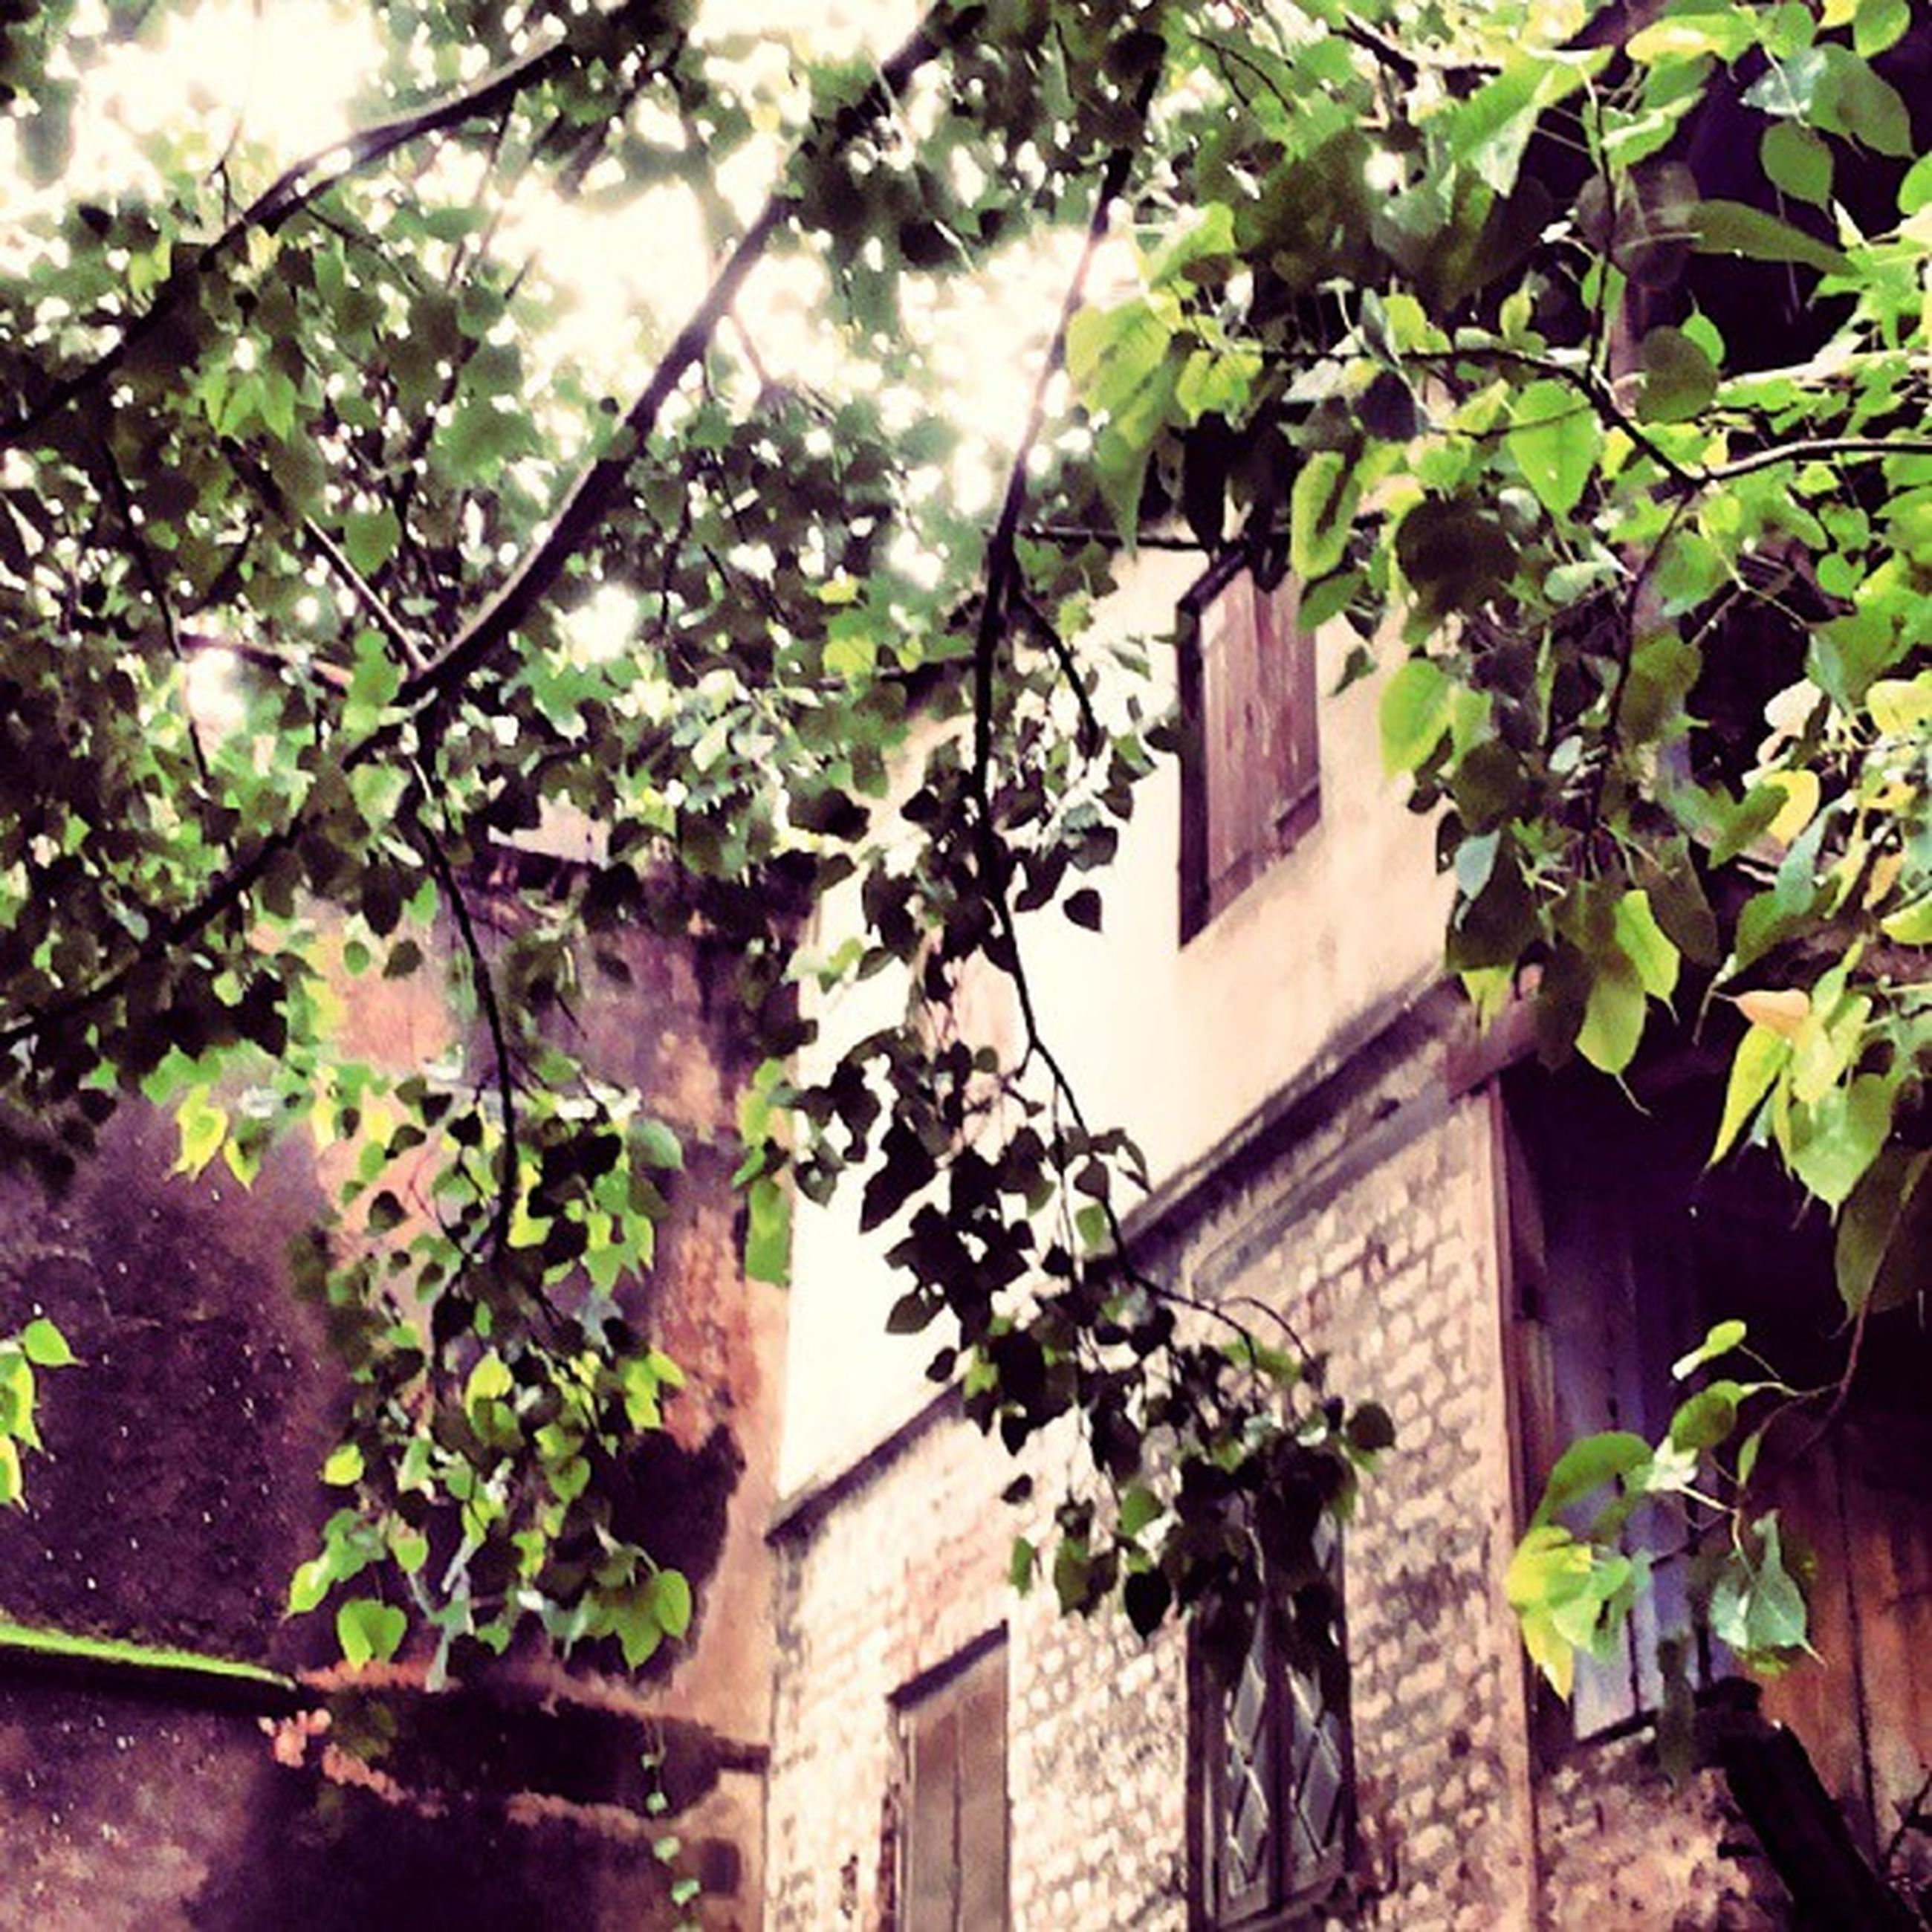 building exterior, architecture, built structure, growth, house, leaf, plant, low angle view, residential structure, tree, residential building, ivy, window, green color, branch, front or back yard, nature, potted plant, day, sunlight